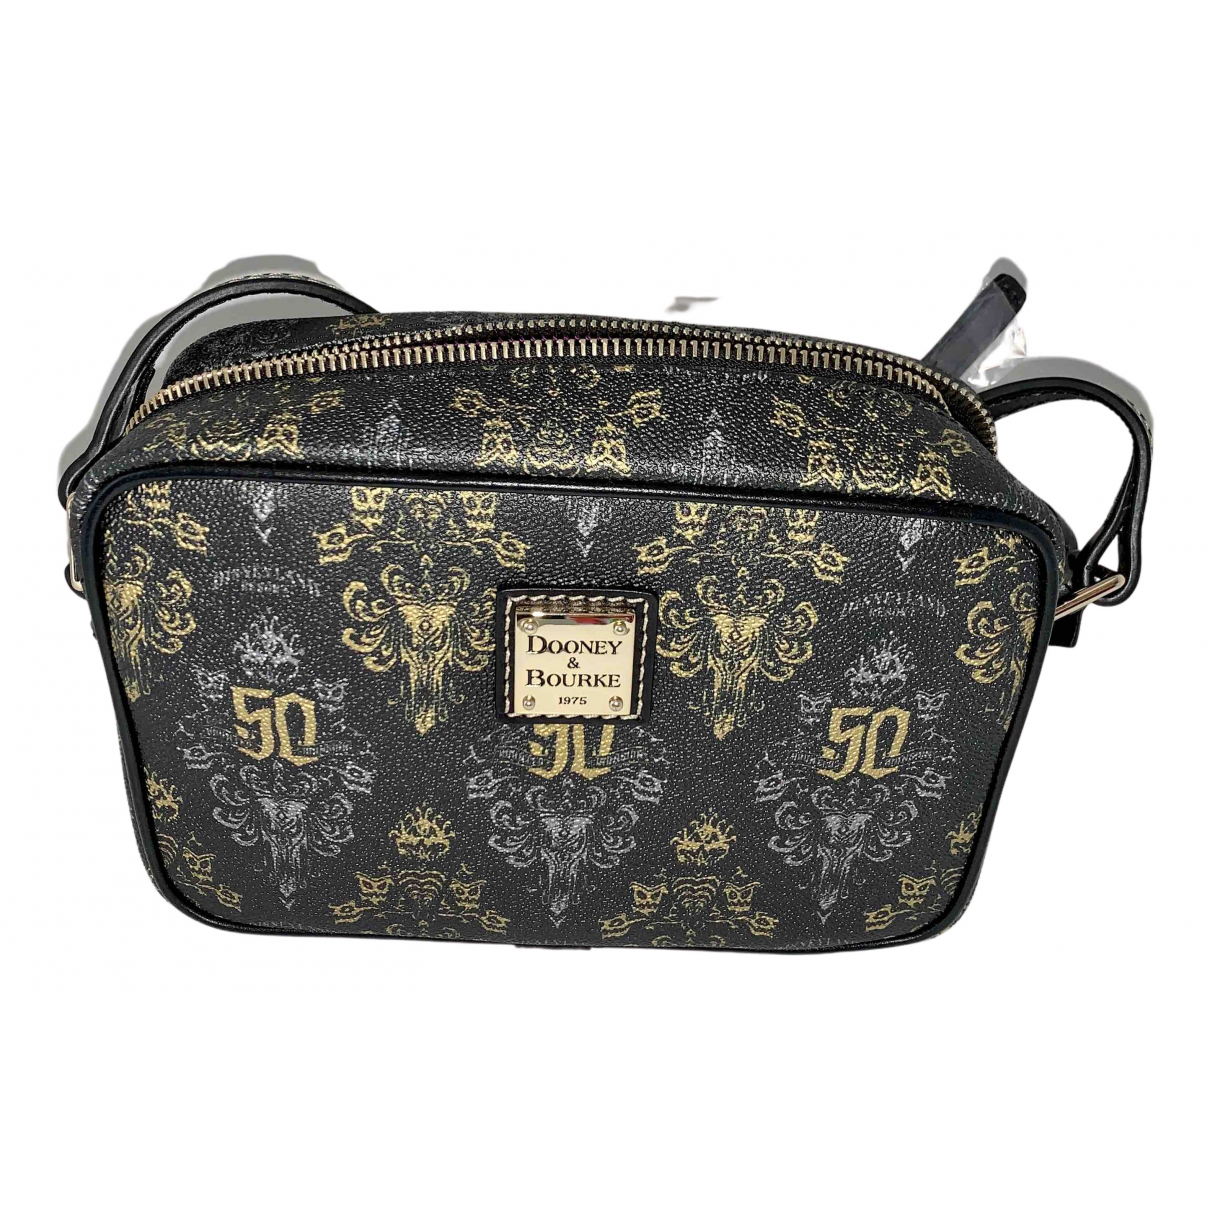 Dooney And Bourke - Sac a main   pour femme en cuir - anthracite